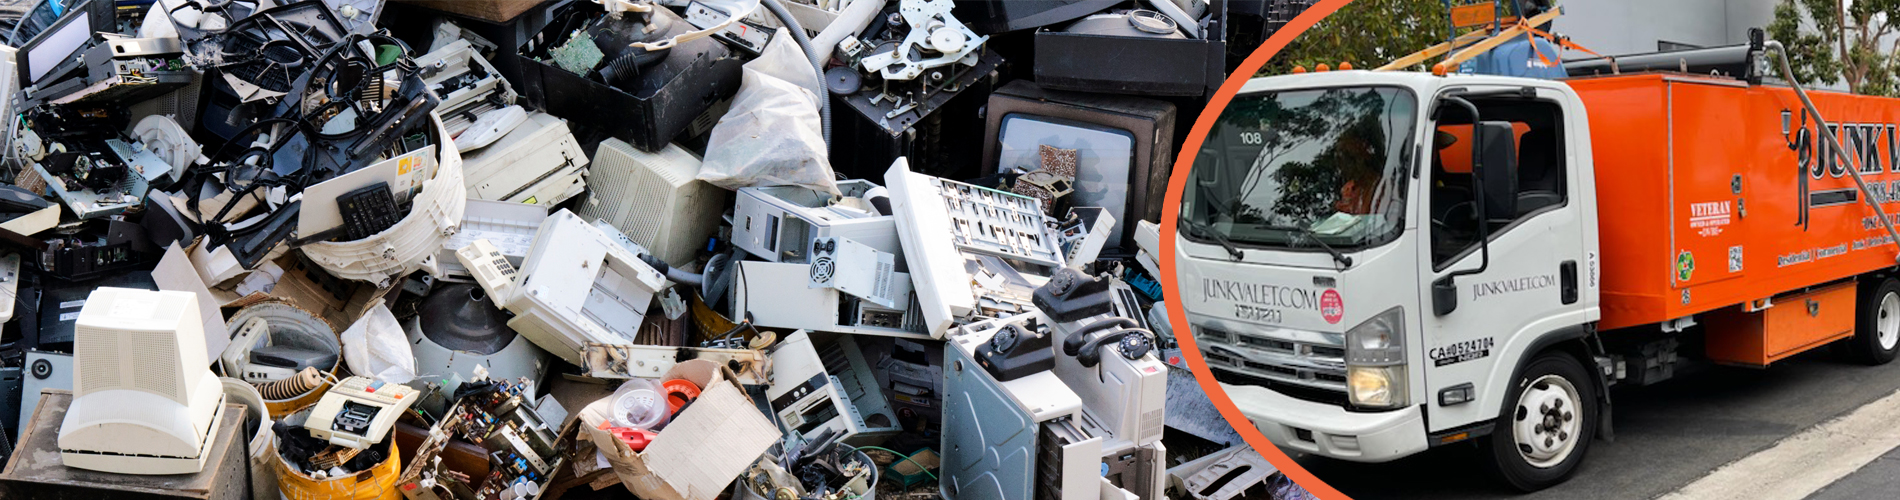 E-Waste Recycling, Electronics Recycling Services